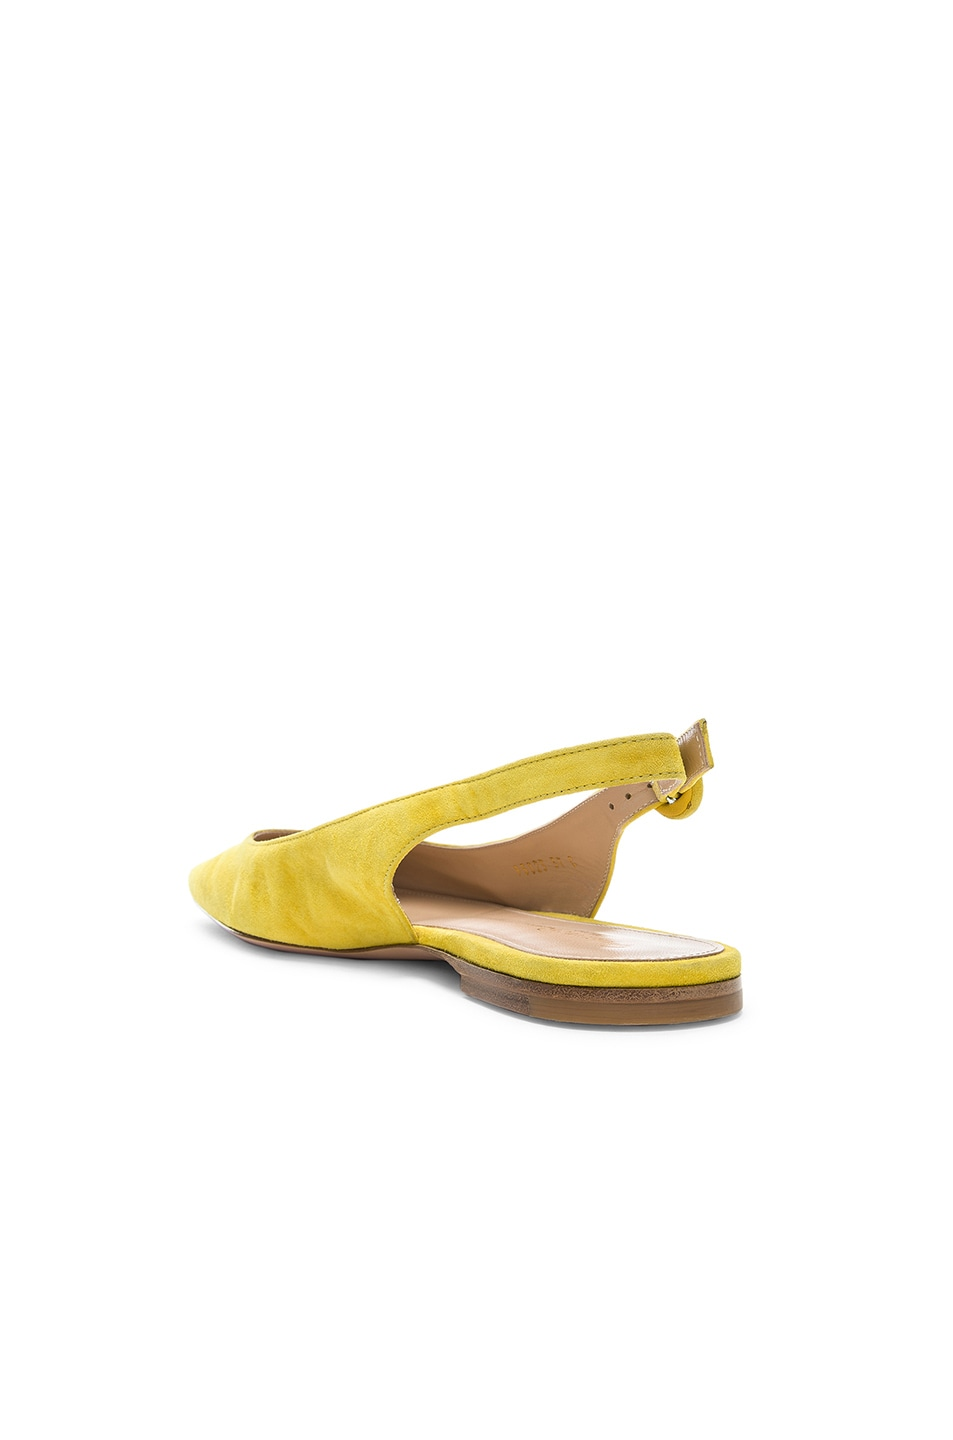 Image 3 of Gianvito Rossi Tish Slingback Flat in Mimosa